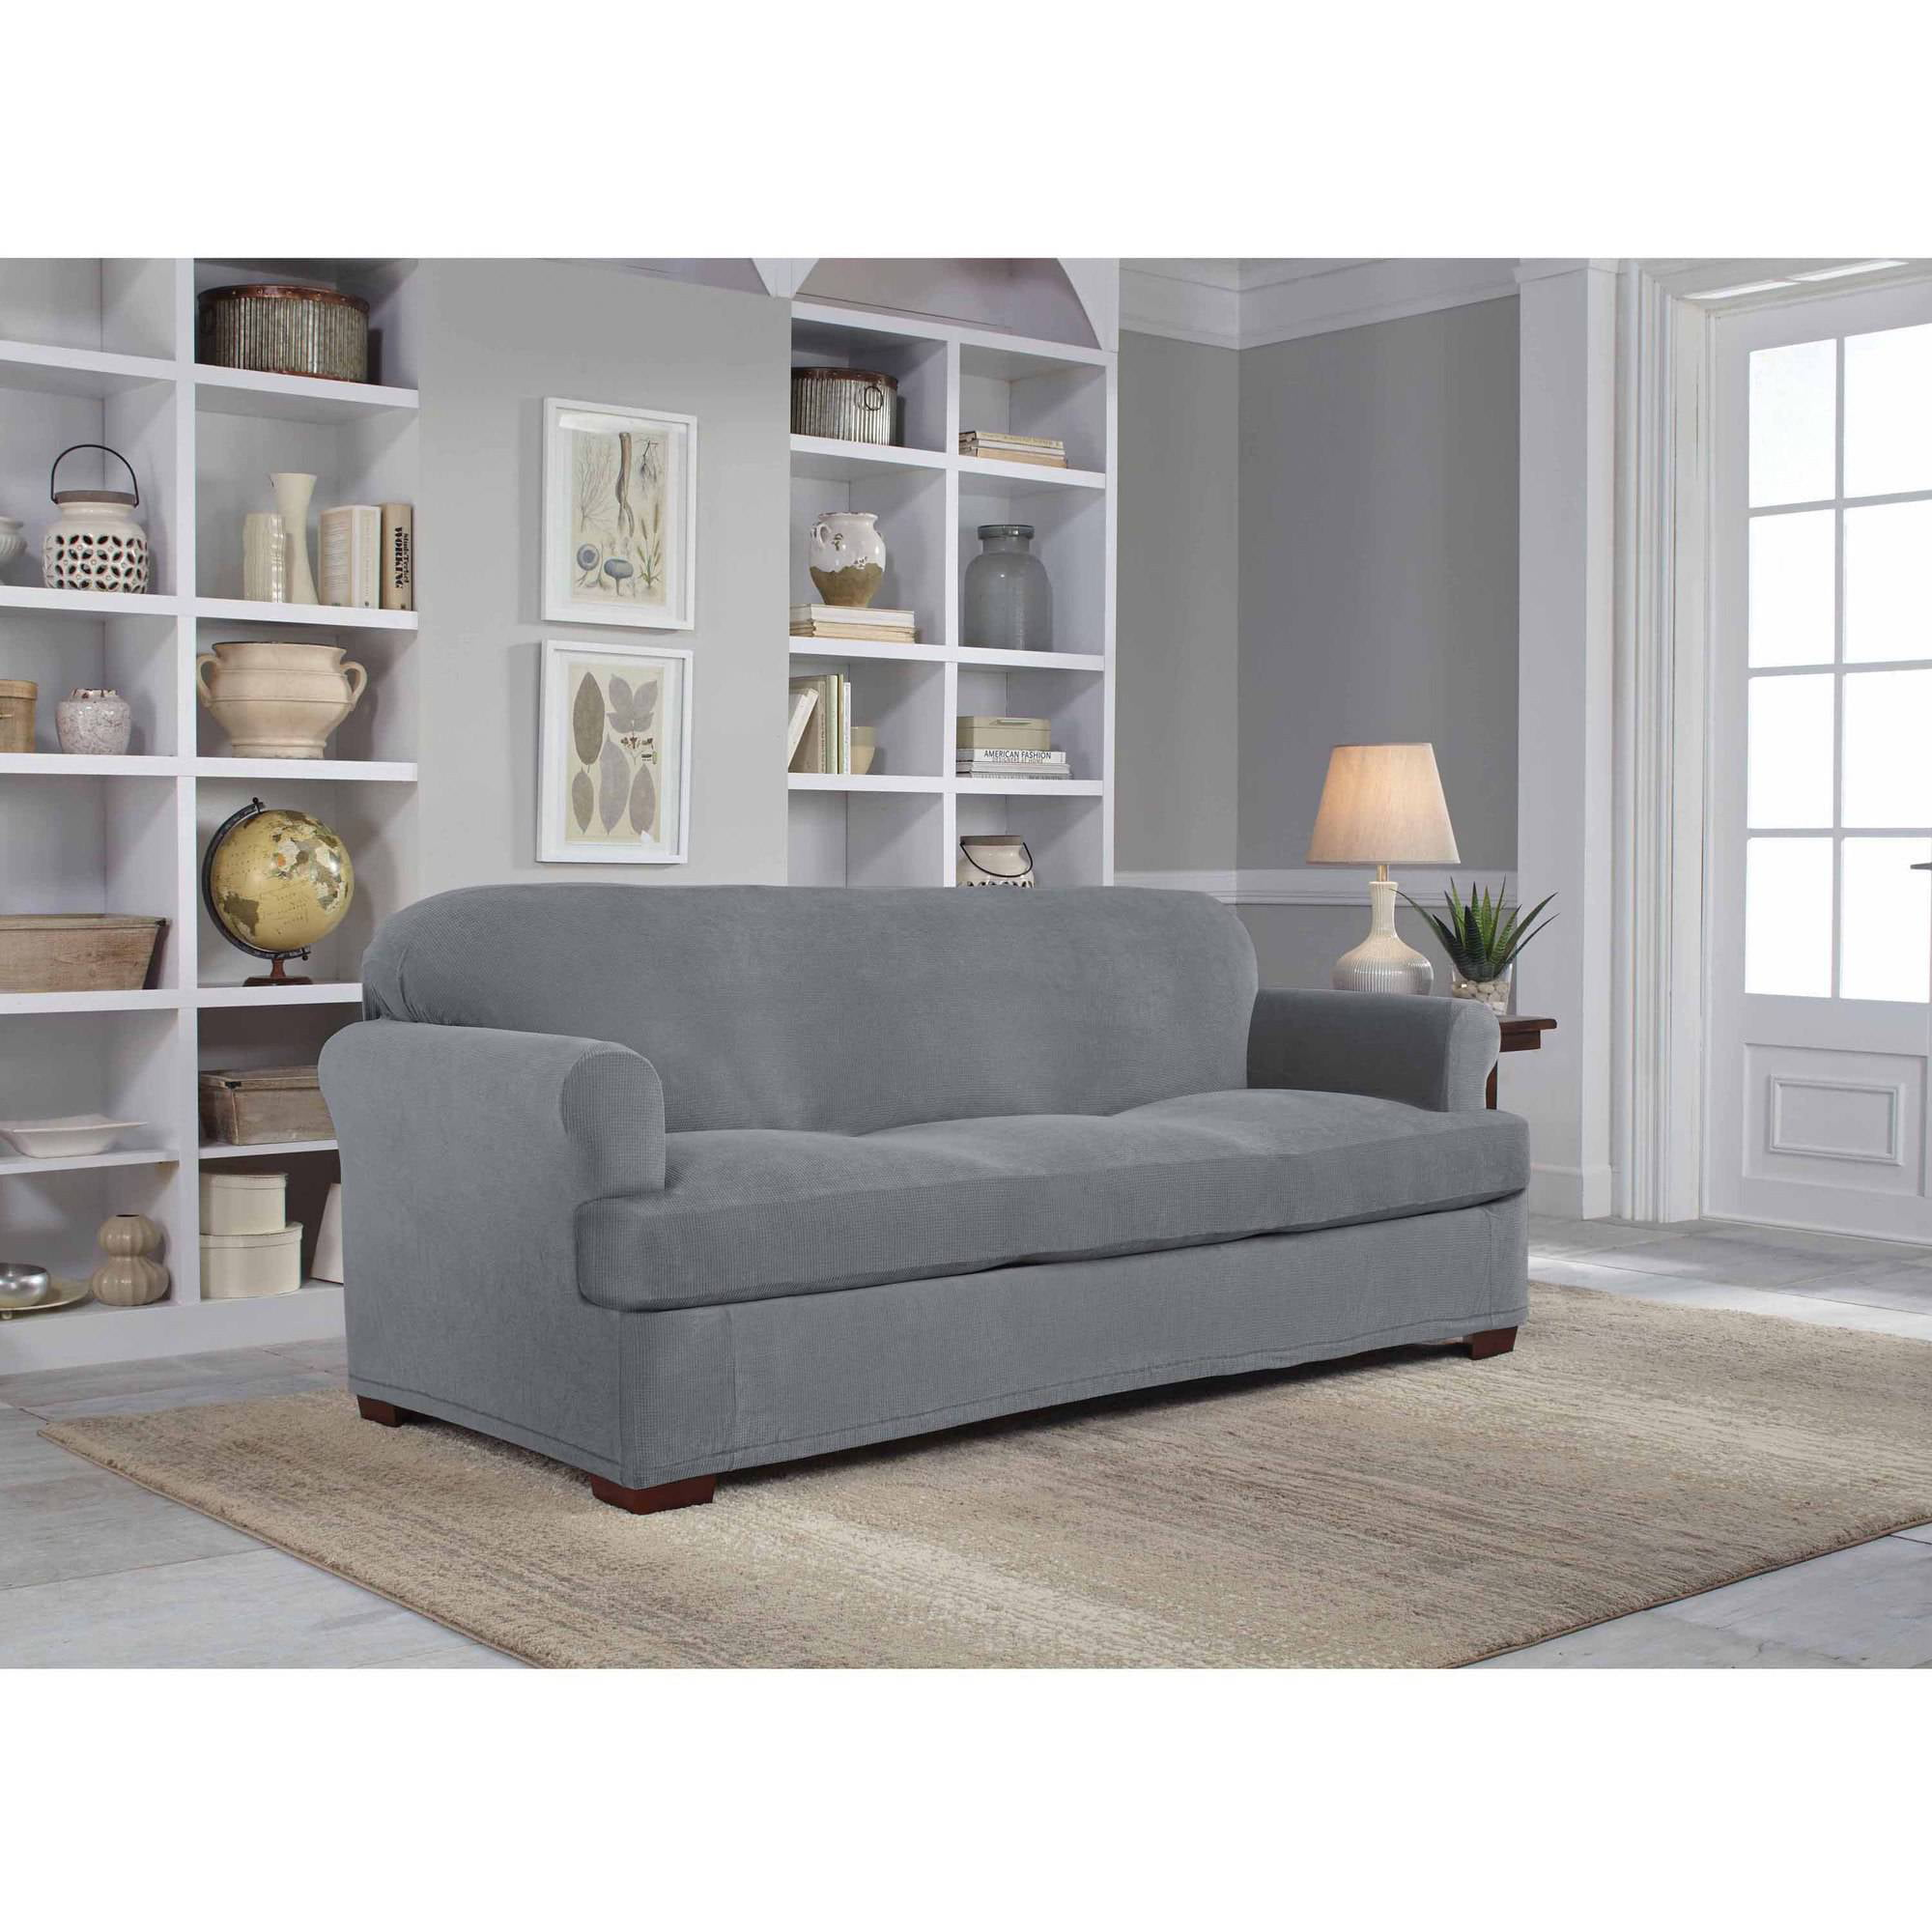 Serta Stretch Grid Slipcover, Sofa, 2-Piece T Cushion - Walmart.com